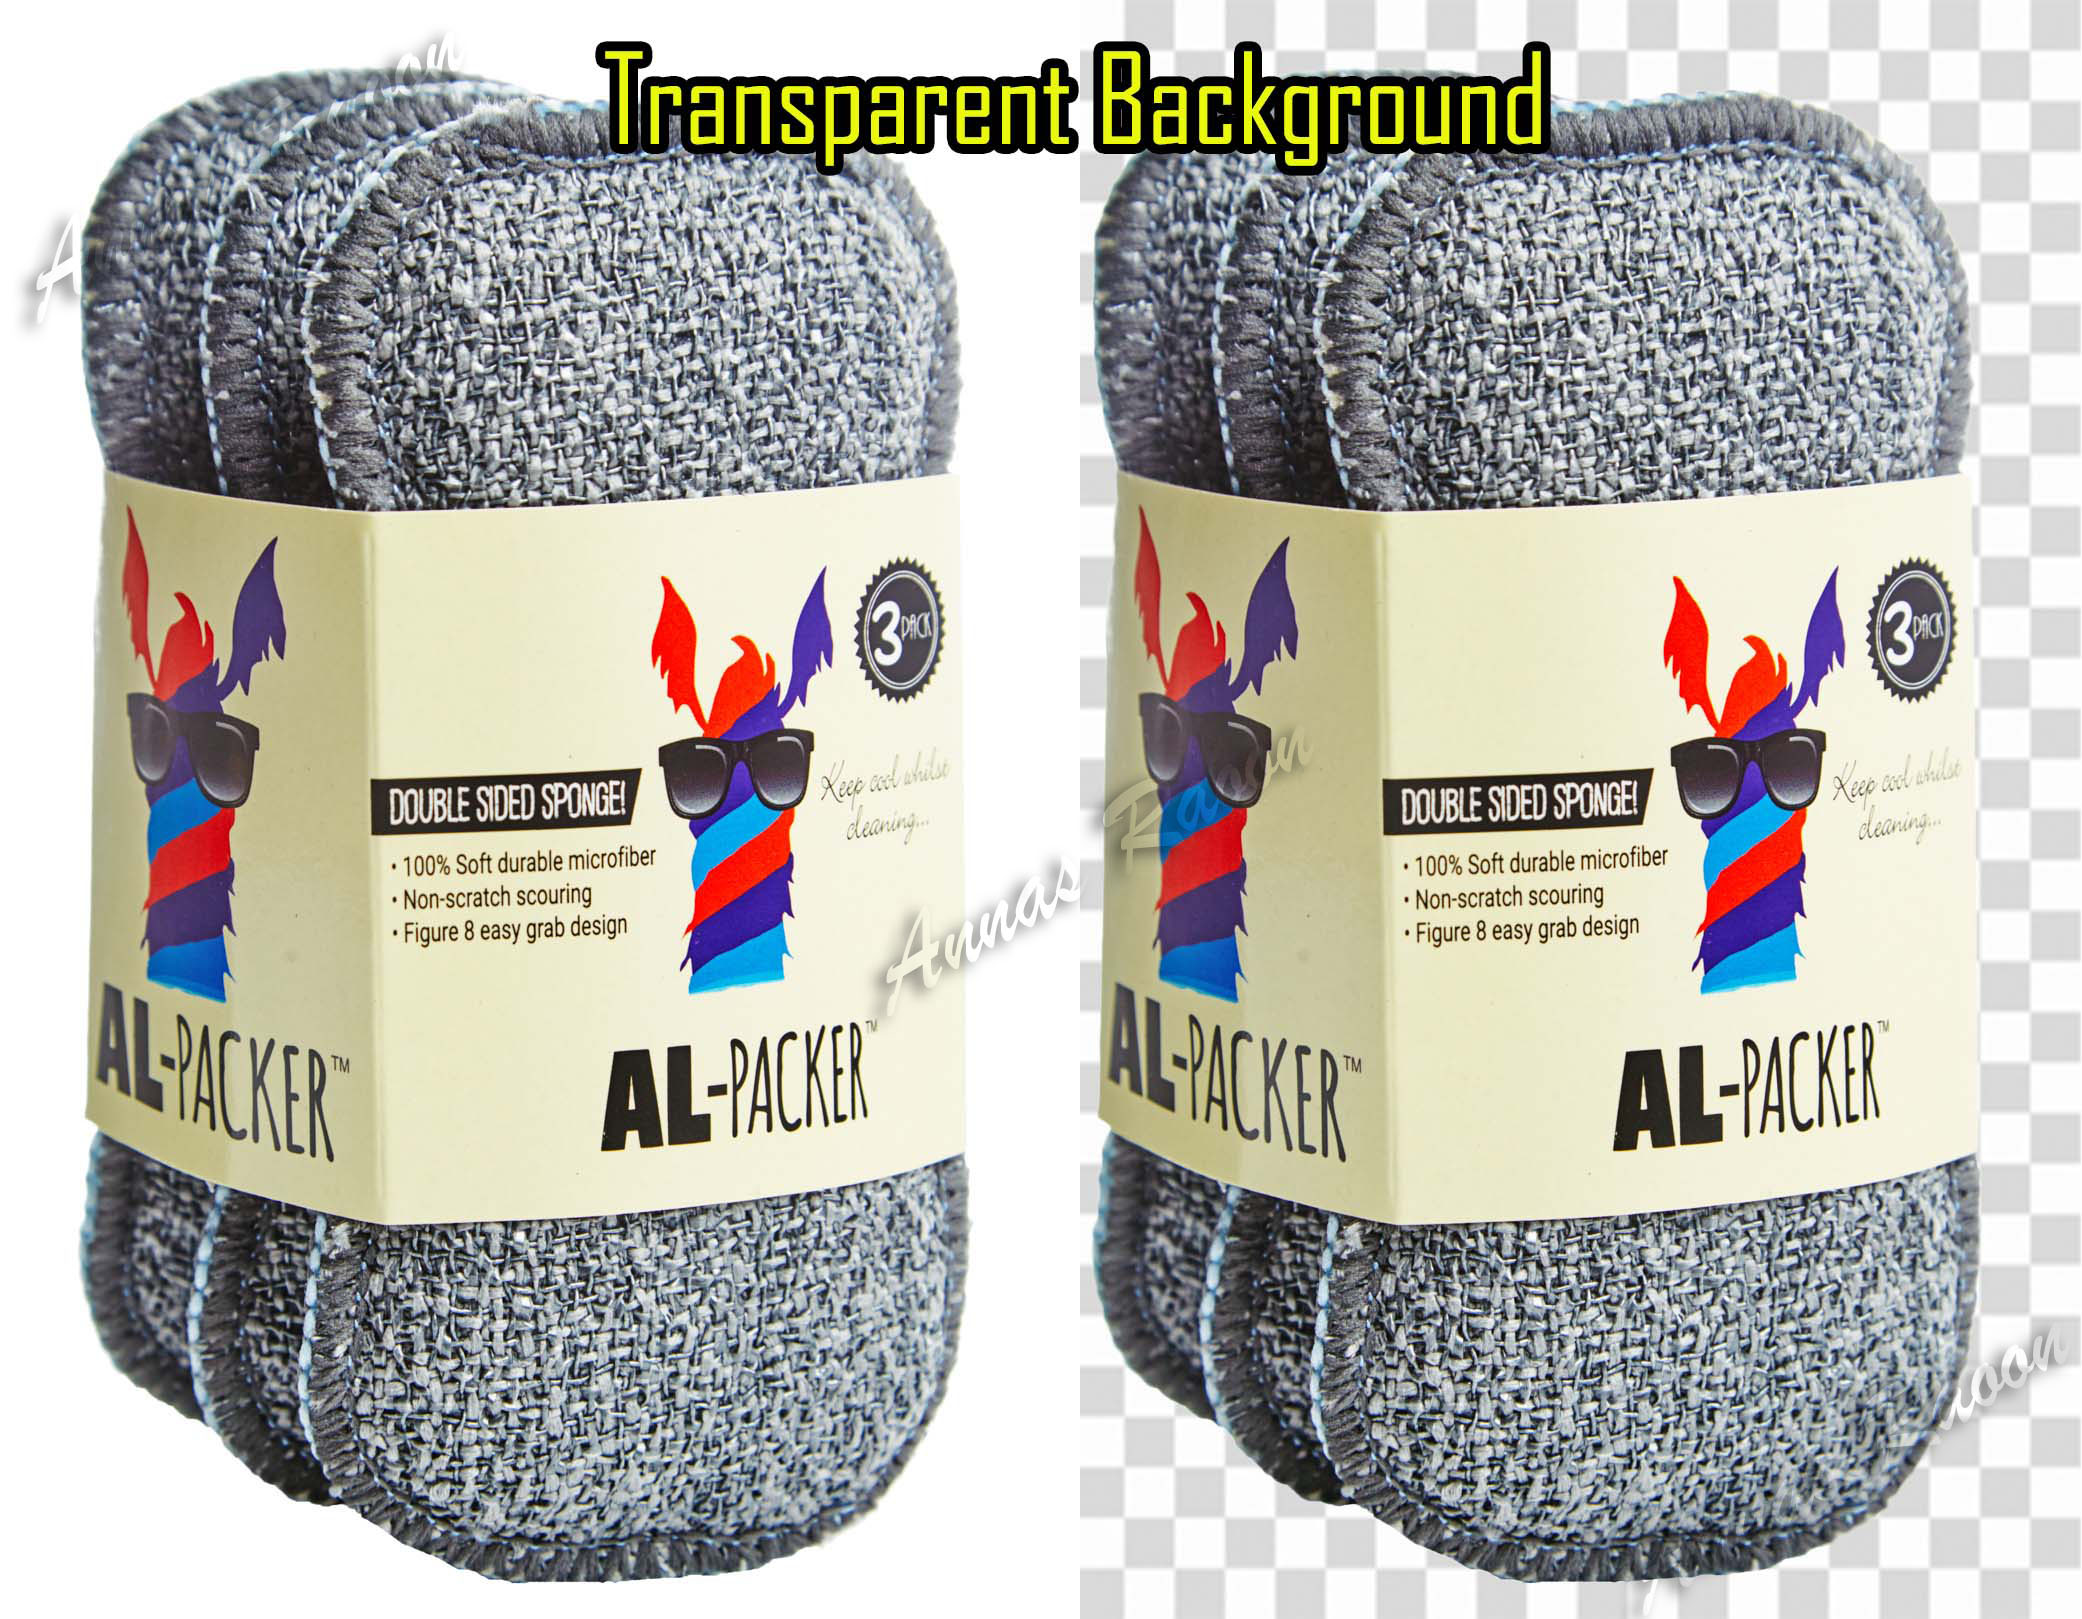 25 Product Images Background Removal Professionally in 24 hours